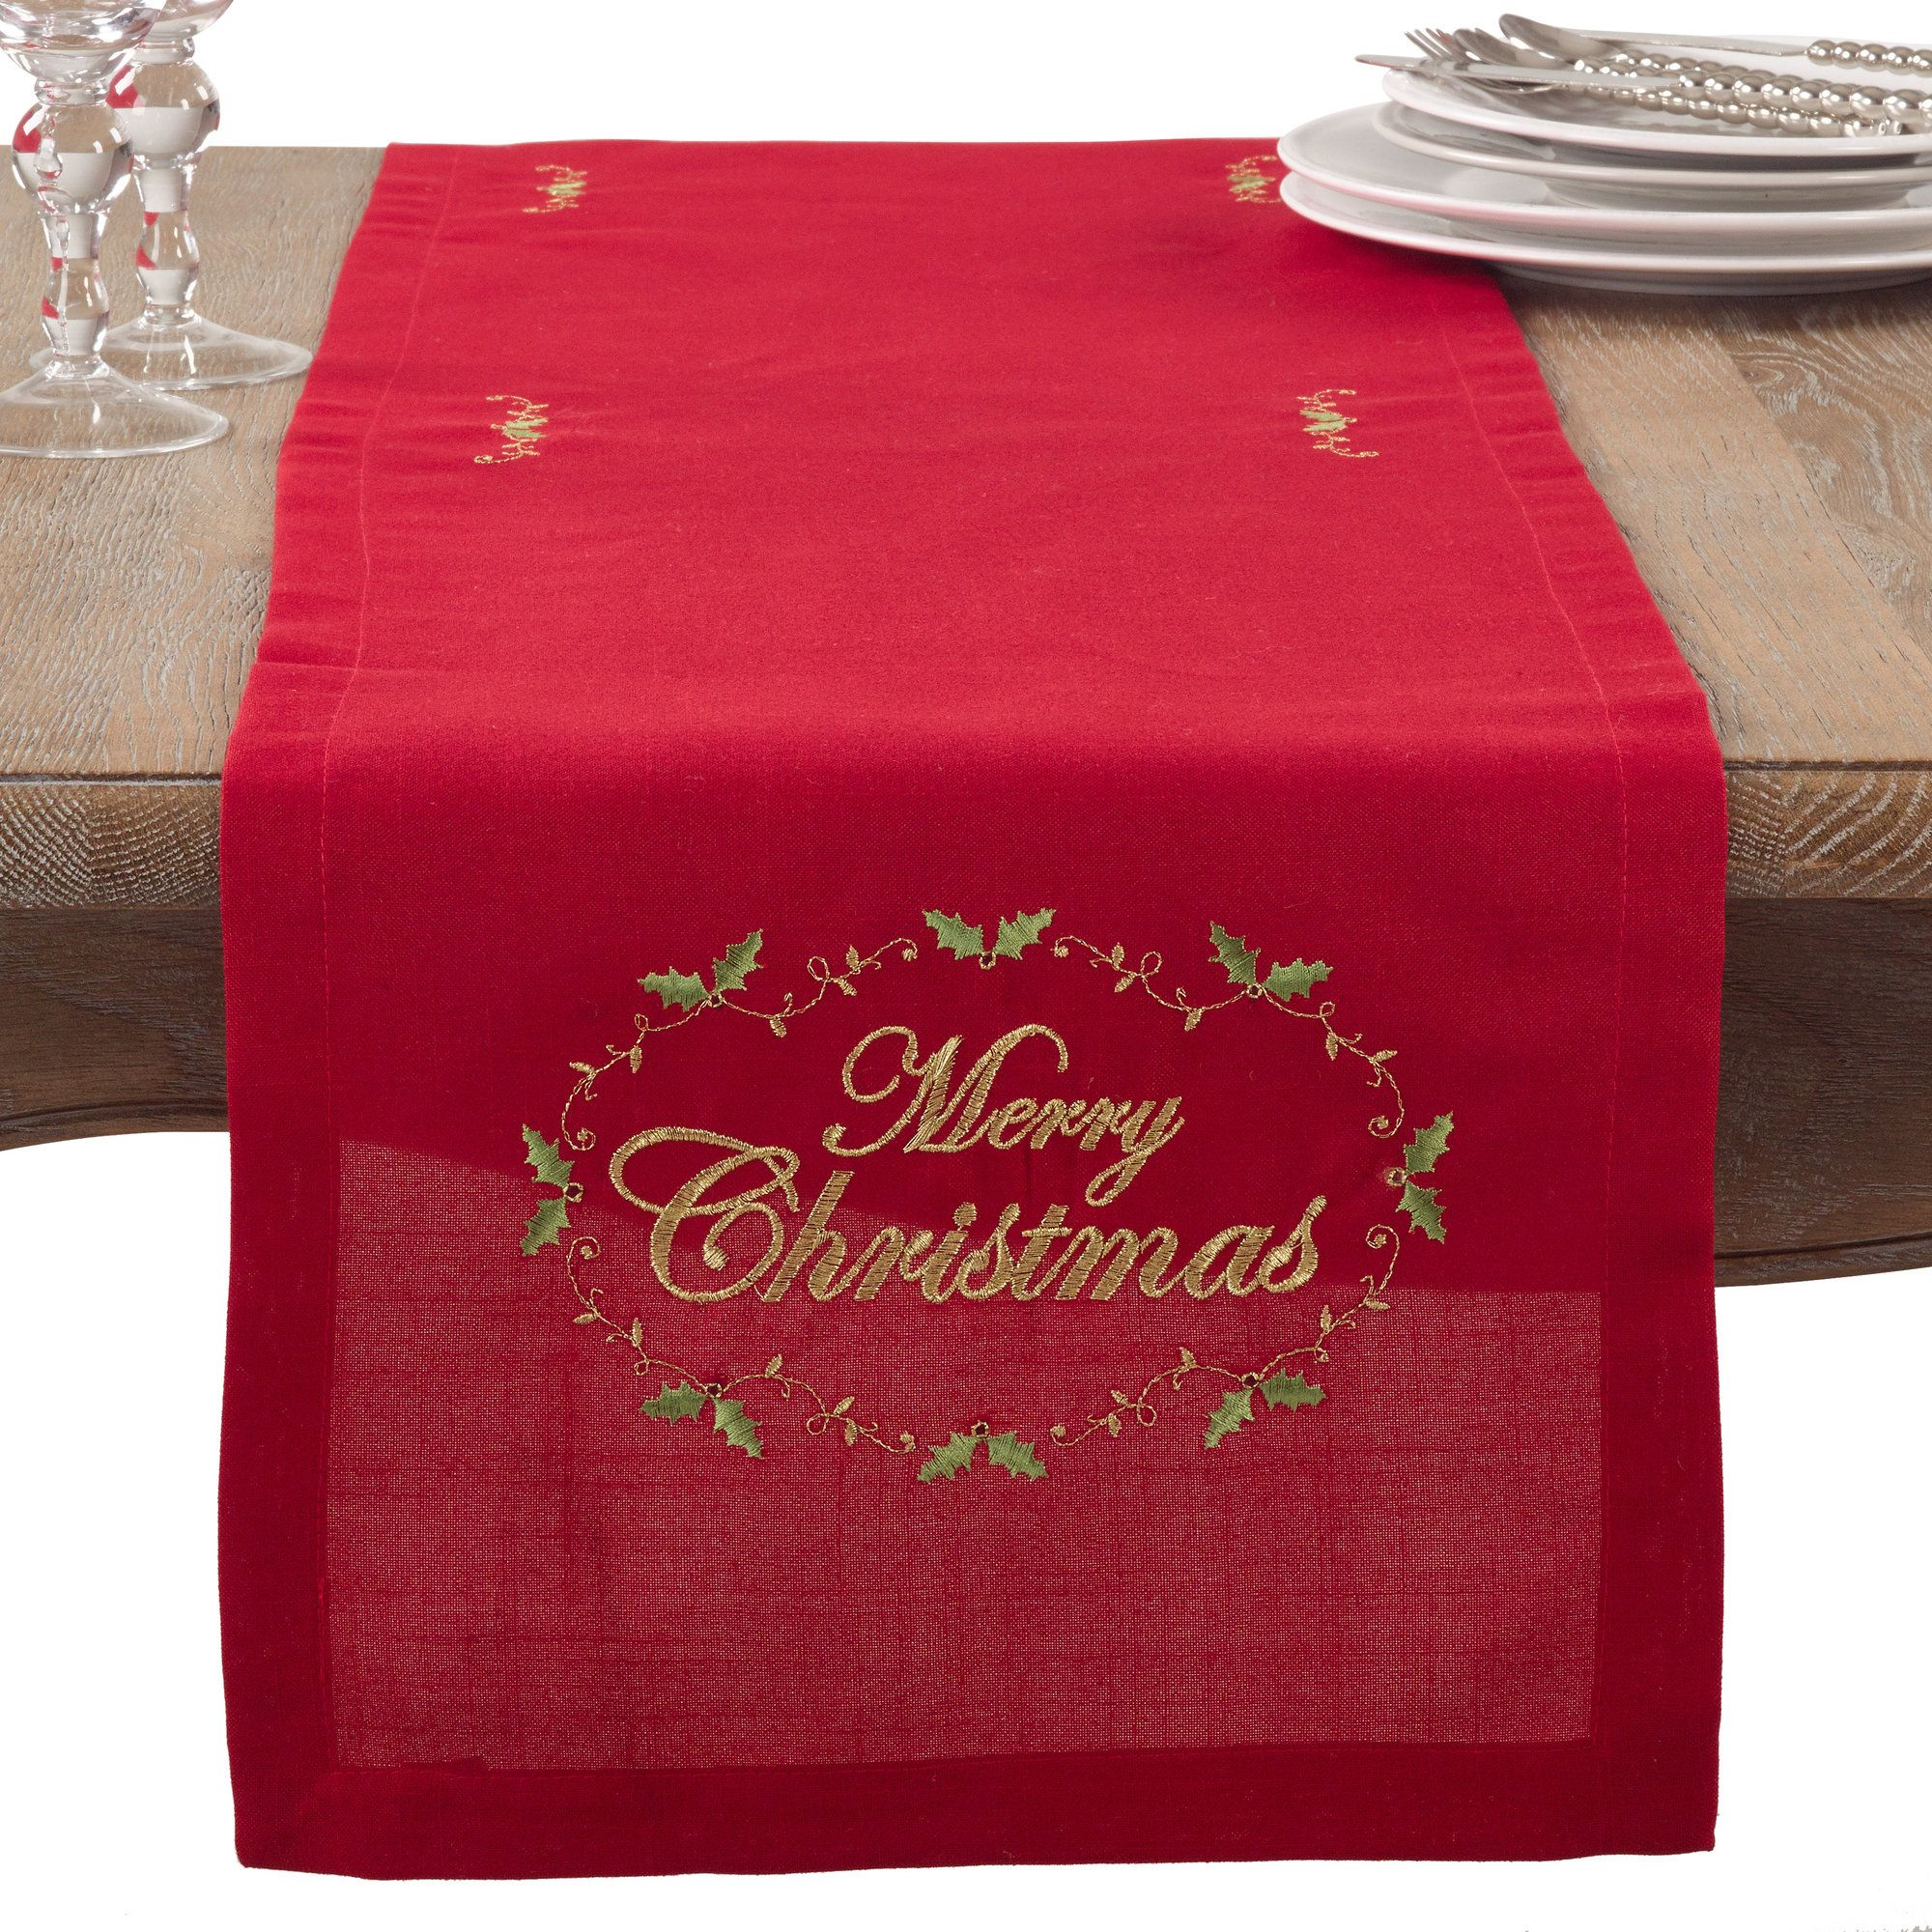 Merry Christmas Holly Embroidered Holiday Table Runner Christmas Runner Holiday Tables Table Runner Size